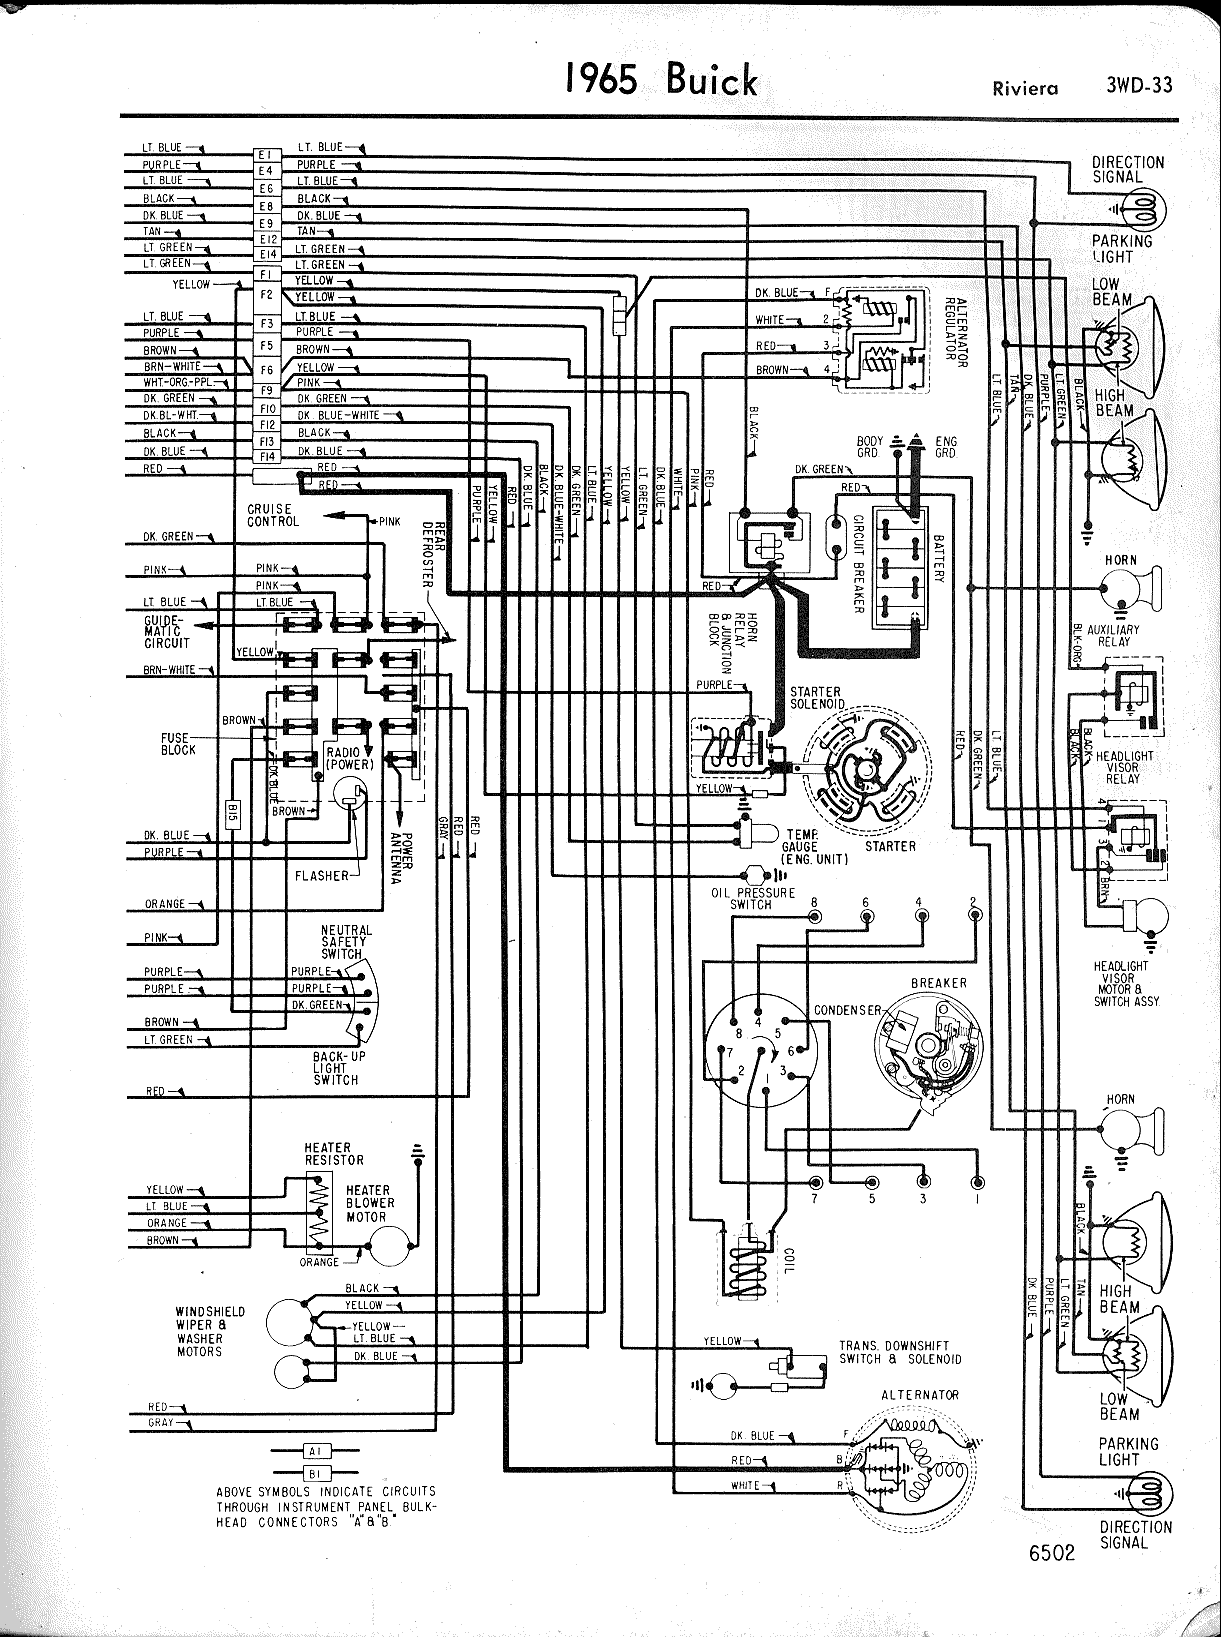 1985 buick riviera wiring diagram schematic diagram1969 buick electra fuse  box wiring diagram data wiring diagram